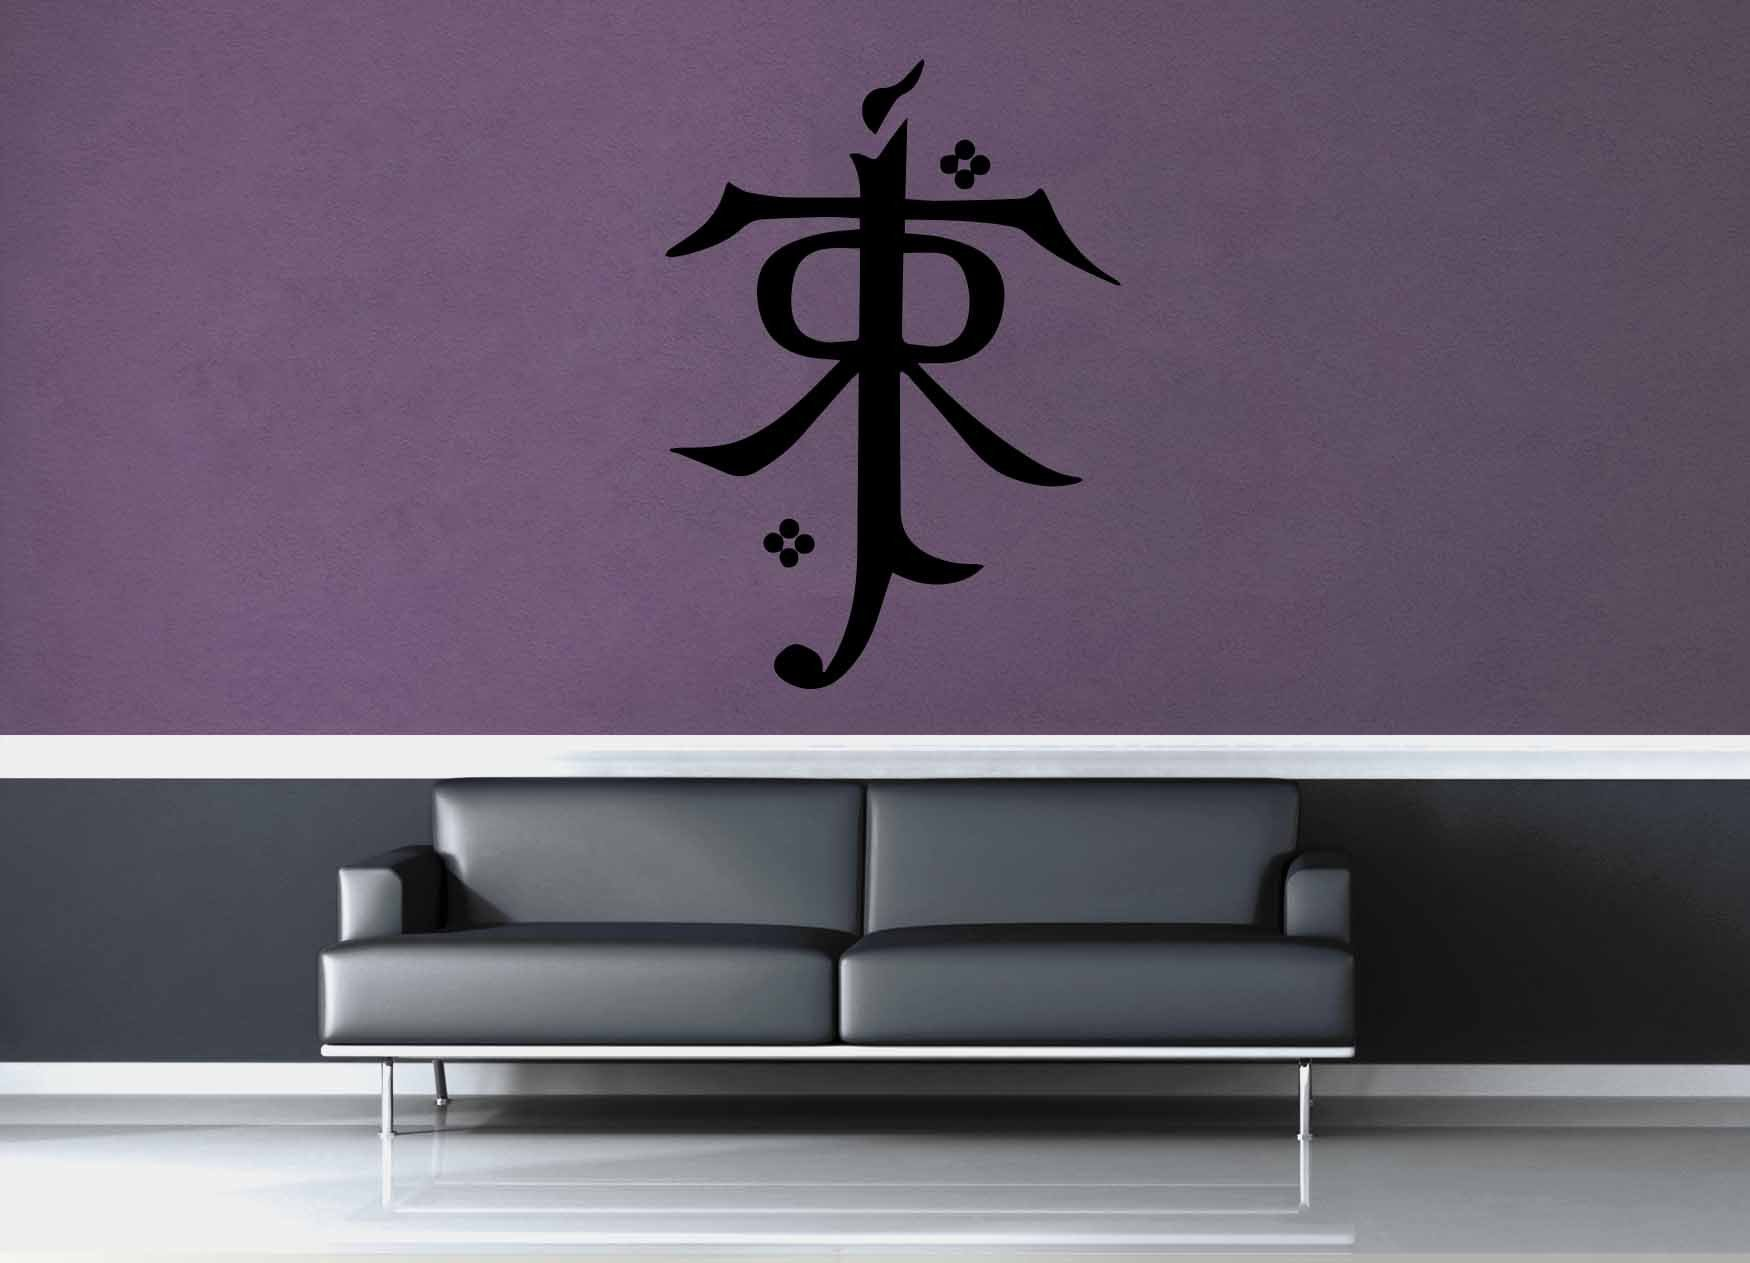 Tolkien Symbol - Wall Decal$8.95